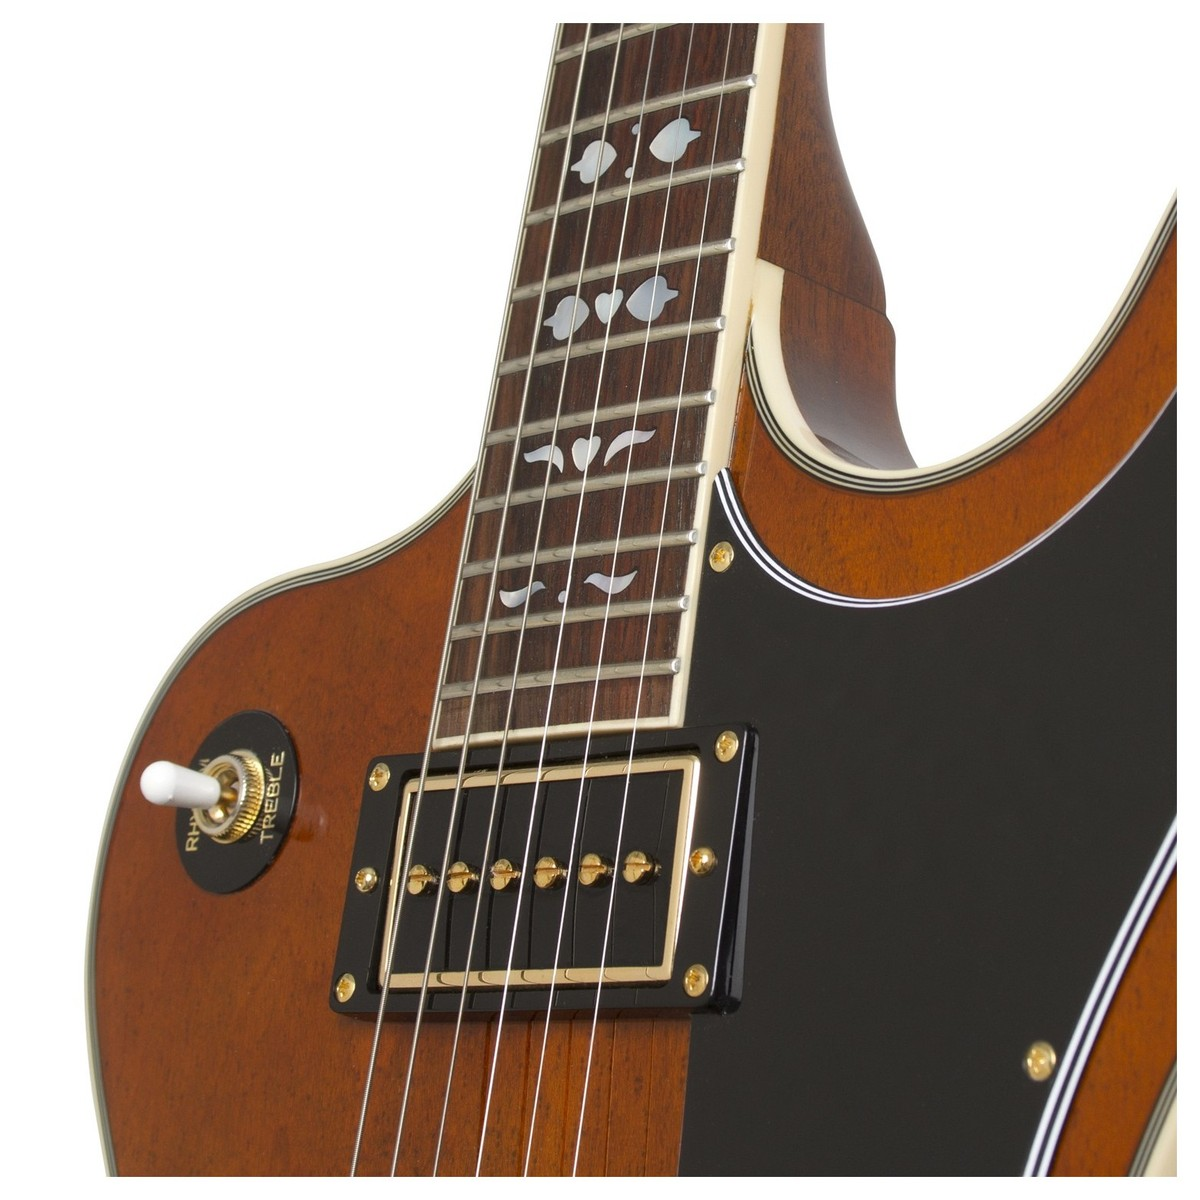 Epiphone Ltd Ed Lee Malia Rd Custom Artisan Outfit At Gear4music Gibson 2014 Les Paul Traditional Tribute Pots Wiring 3 Way Switch Jack Loading Zoom